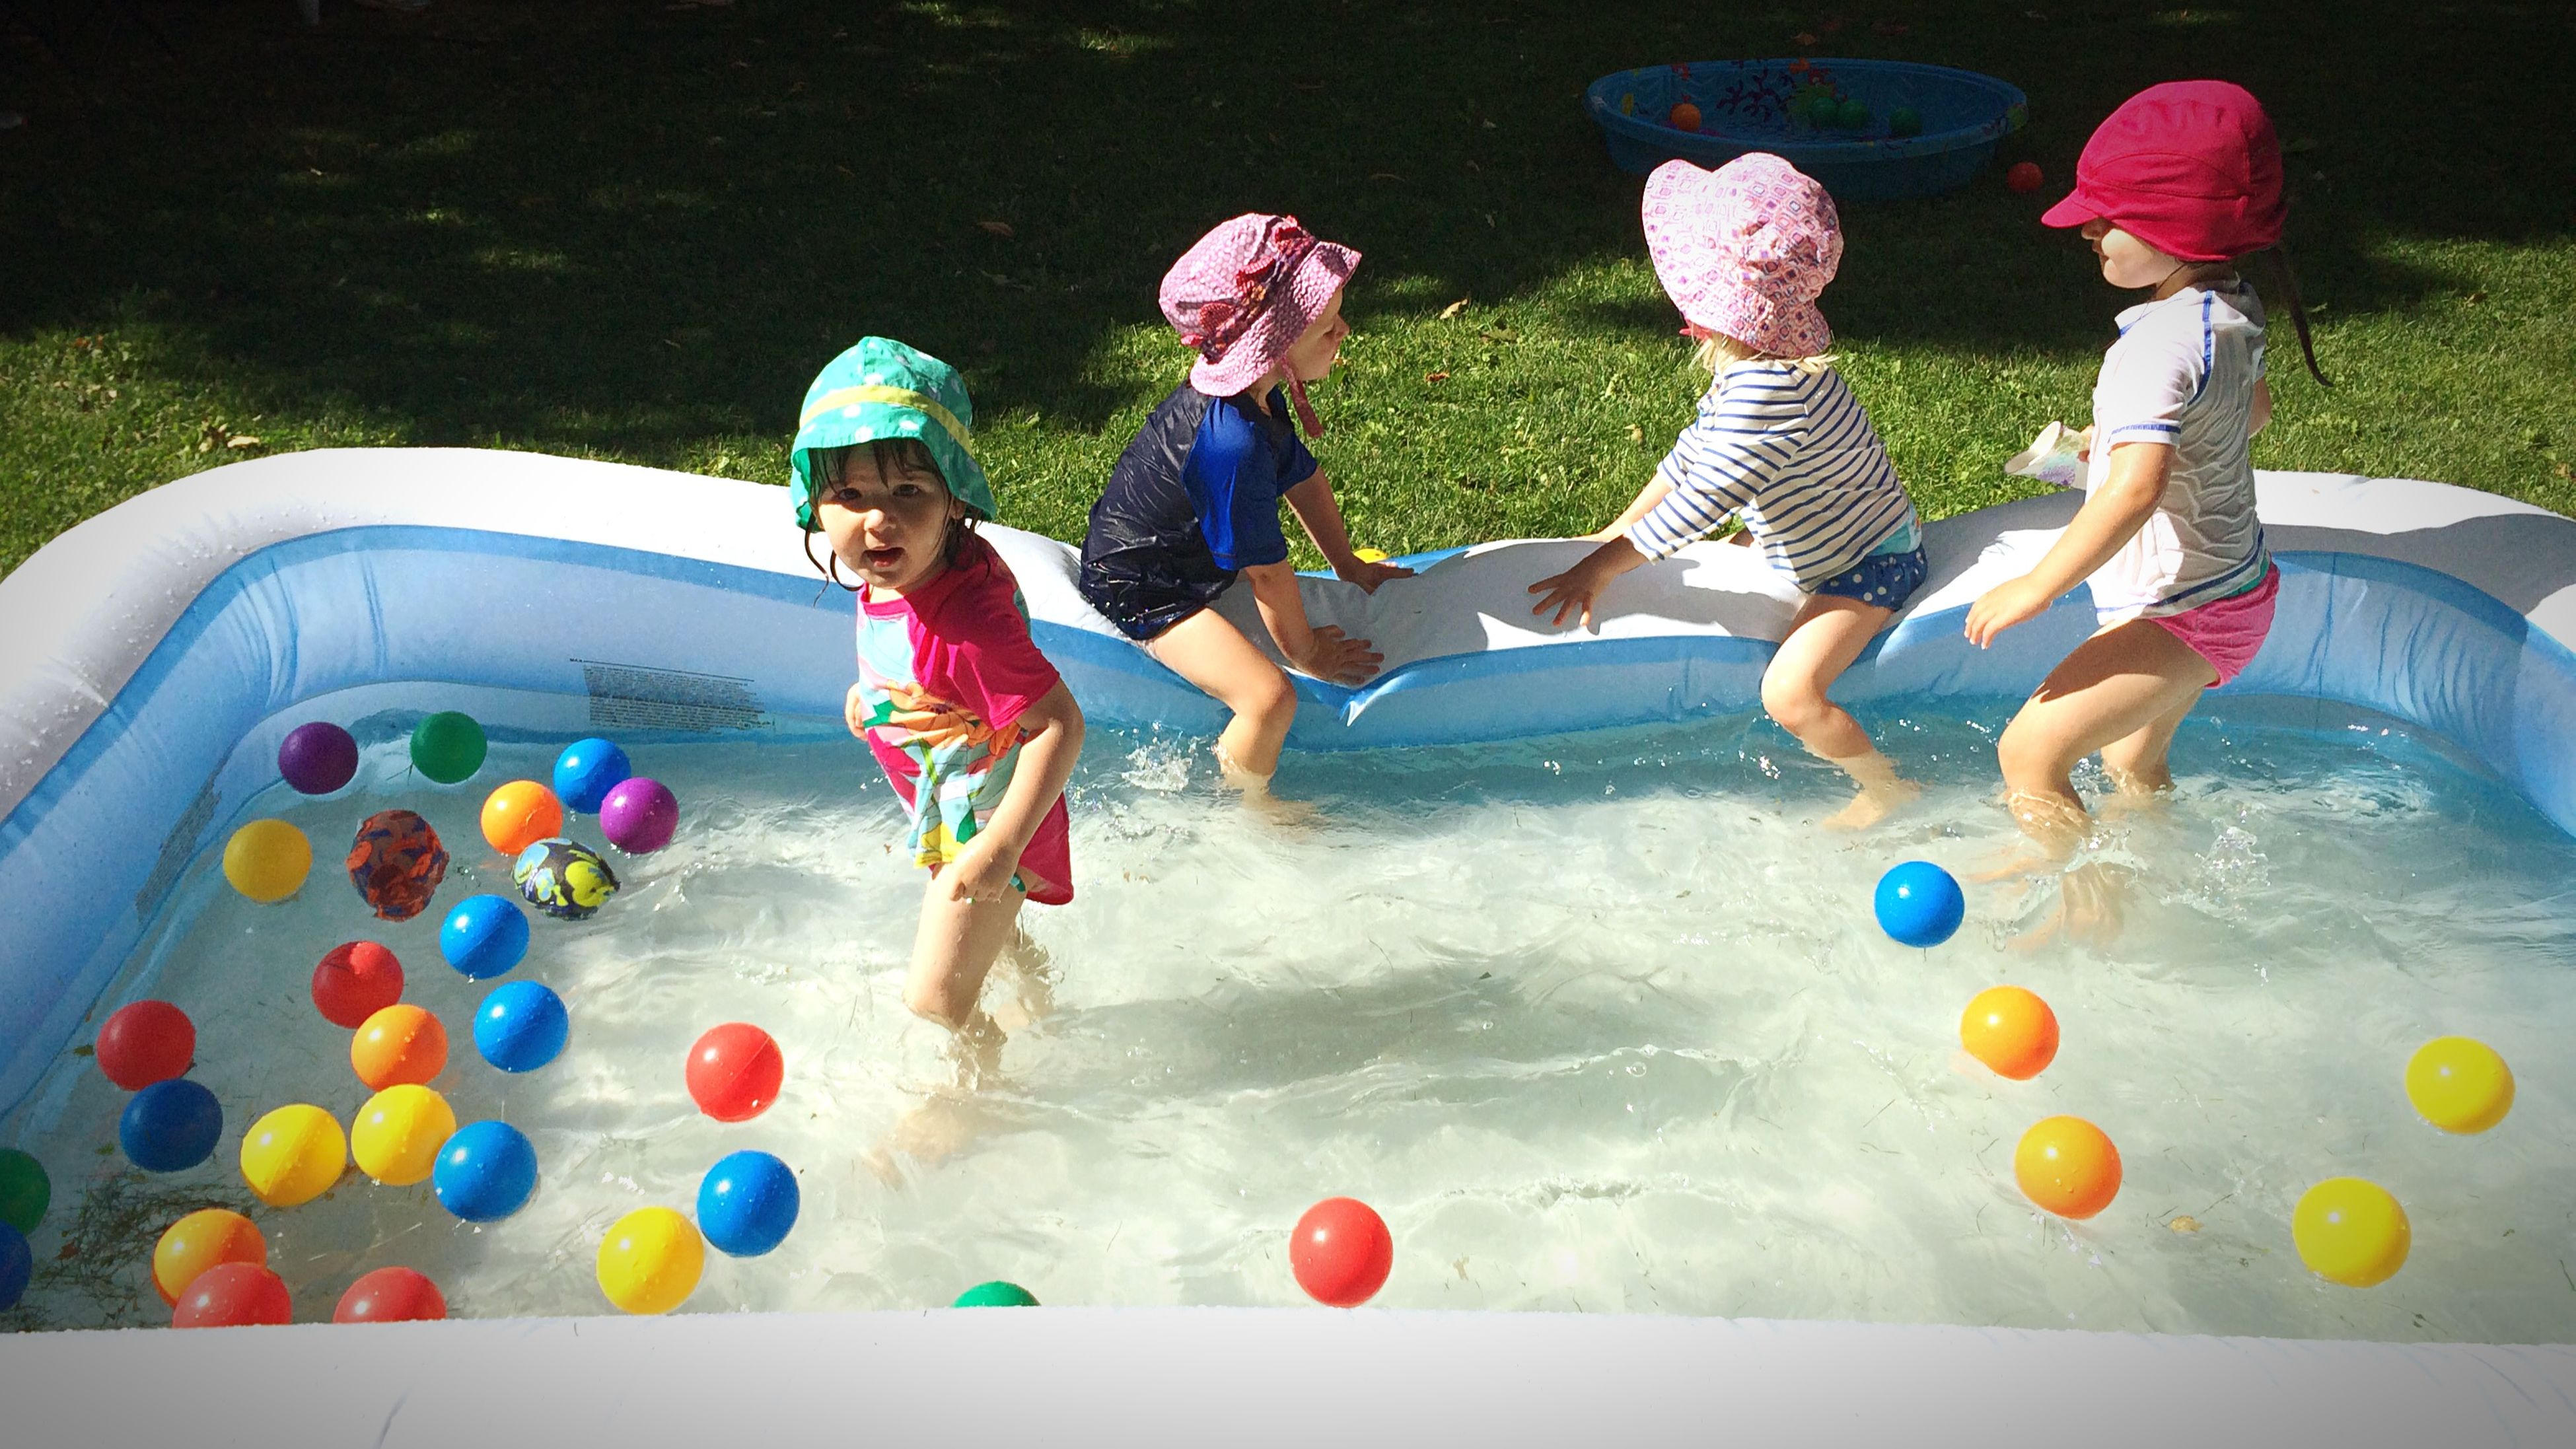 childhood, lifestyles, leisure activity, full length, boys, girls, elementary age, playing, enjoyment, casual clothing, fun, playful, togetherness, innocence, water, sport, person